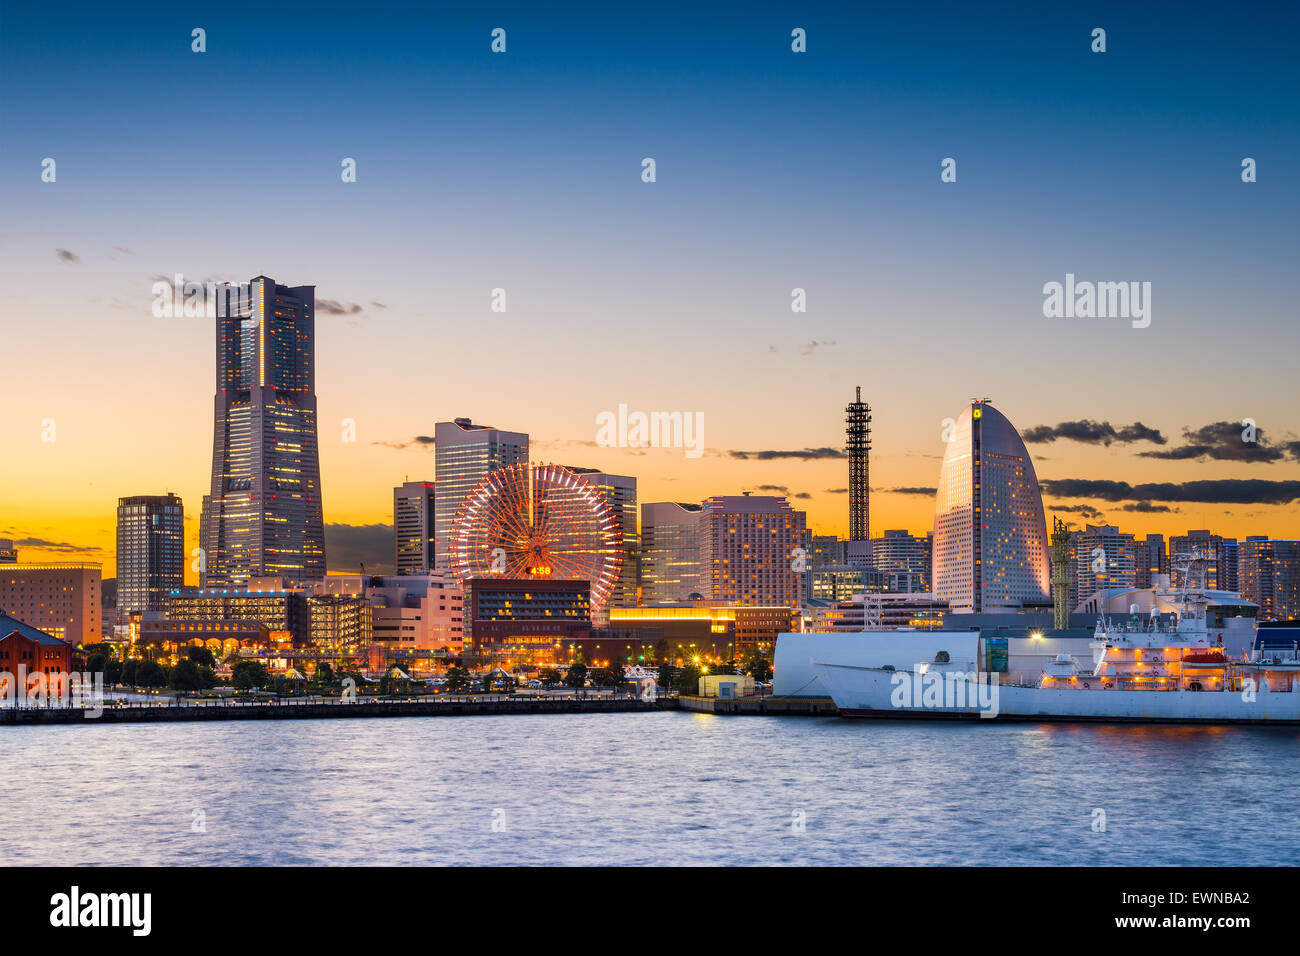 Yokohama, Japan sunset skyline. - Stock Image